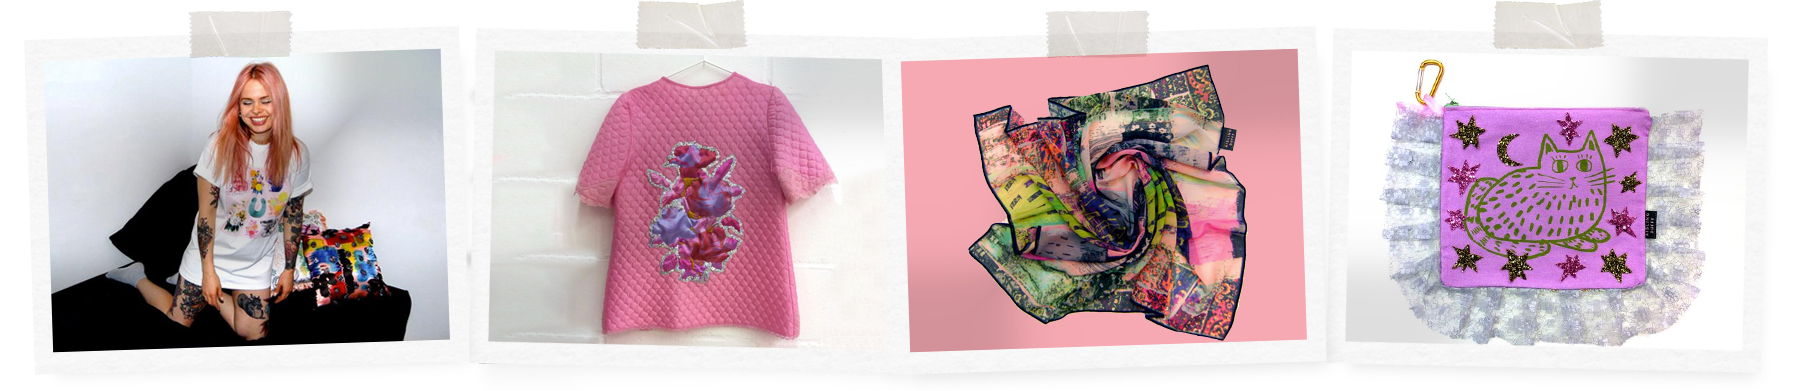 Being Irish T-shirt, €31.72, embroidered quilted jacket, €622.99, silk scarf, €135.92, handmade clutch, €96.28, at aislingduffy.co.uk.